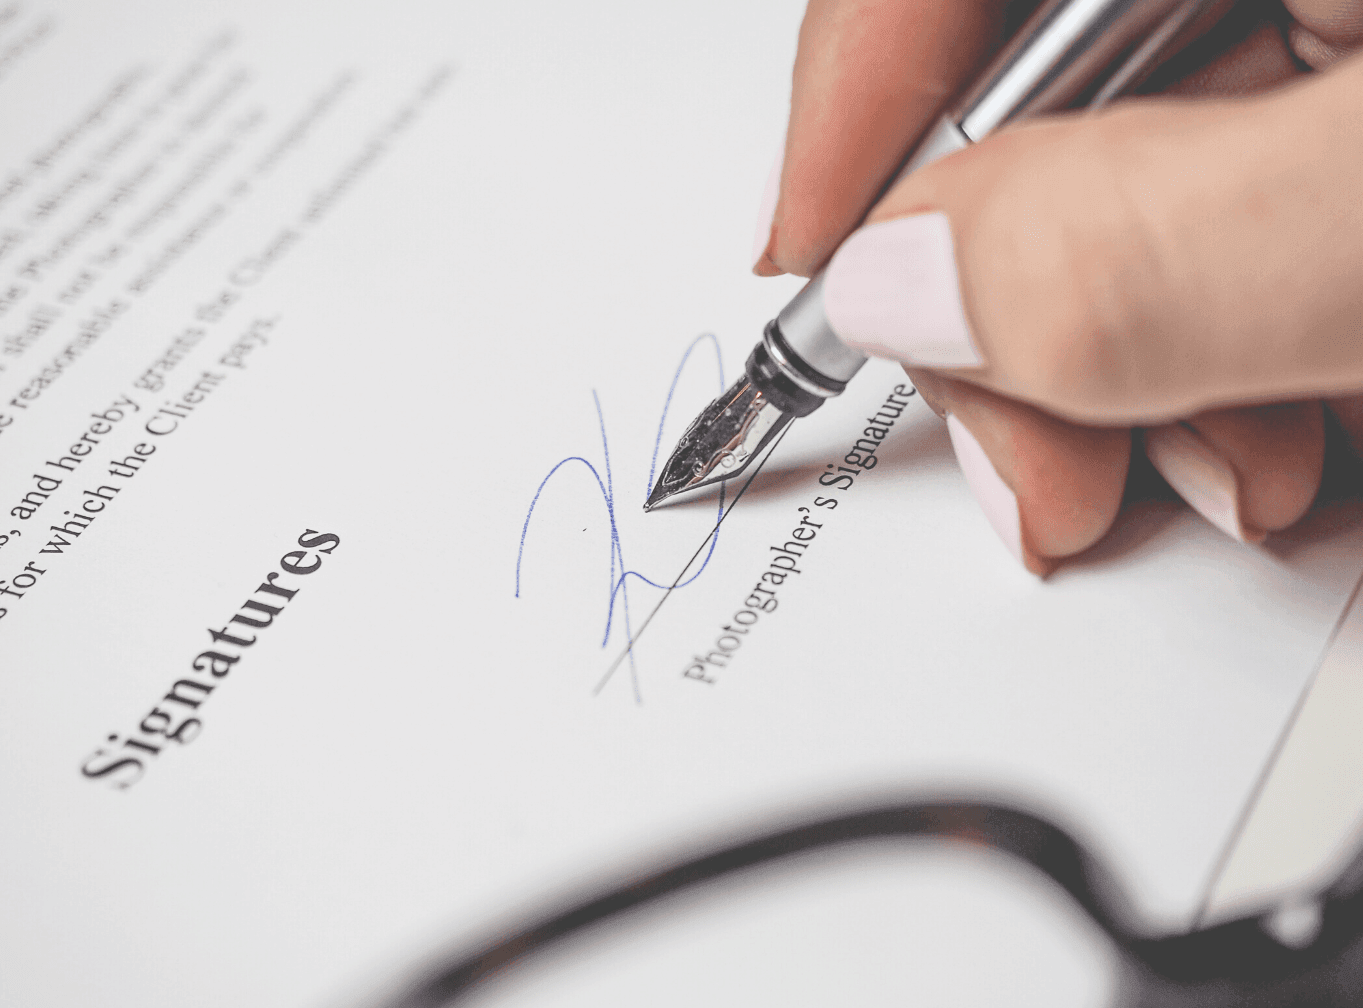 Photo of hand signing a document